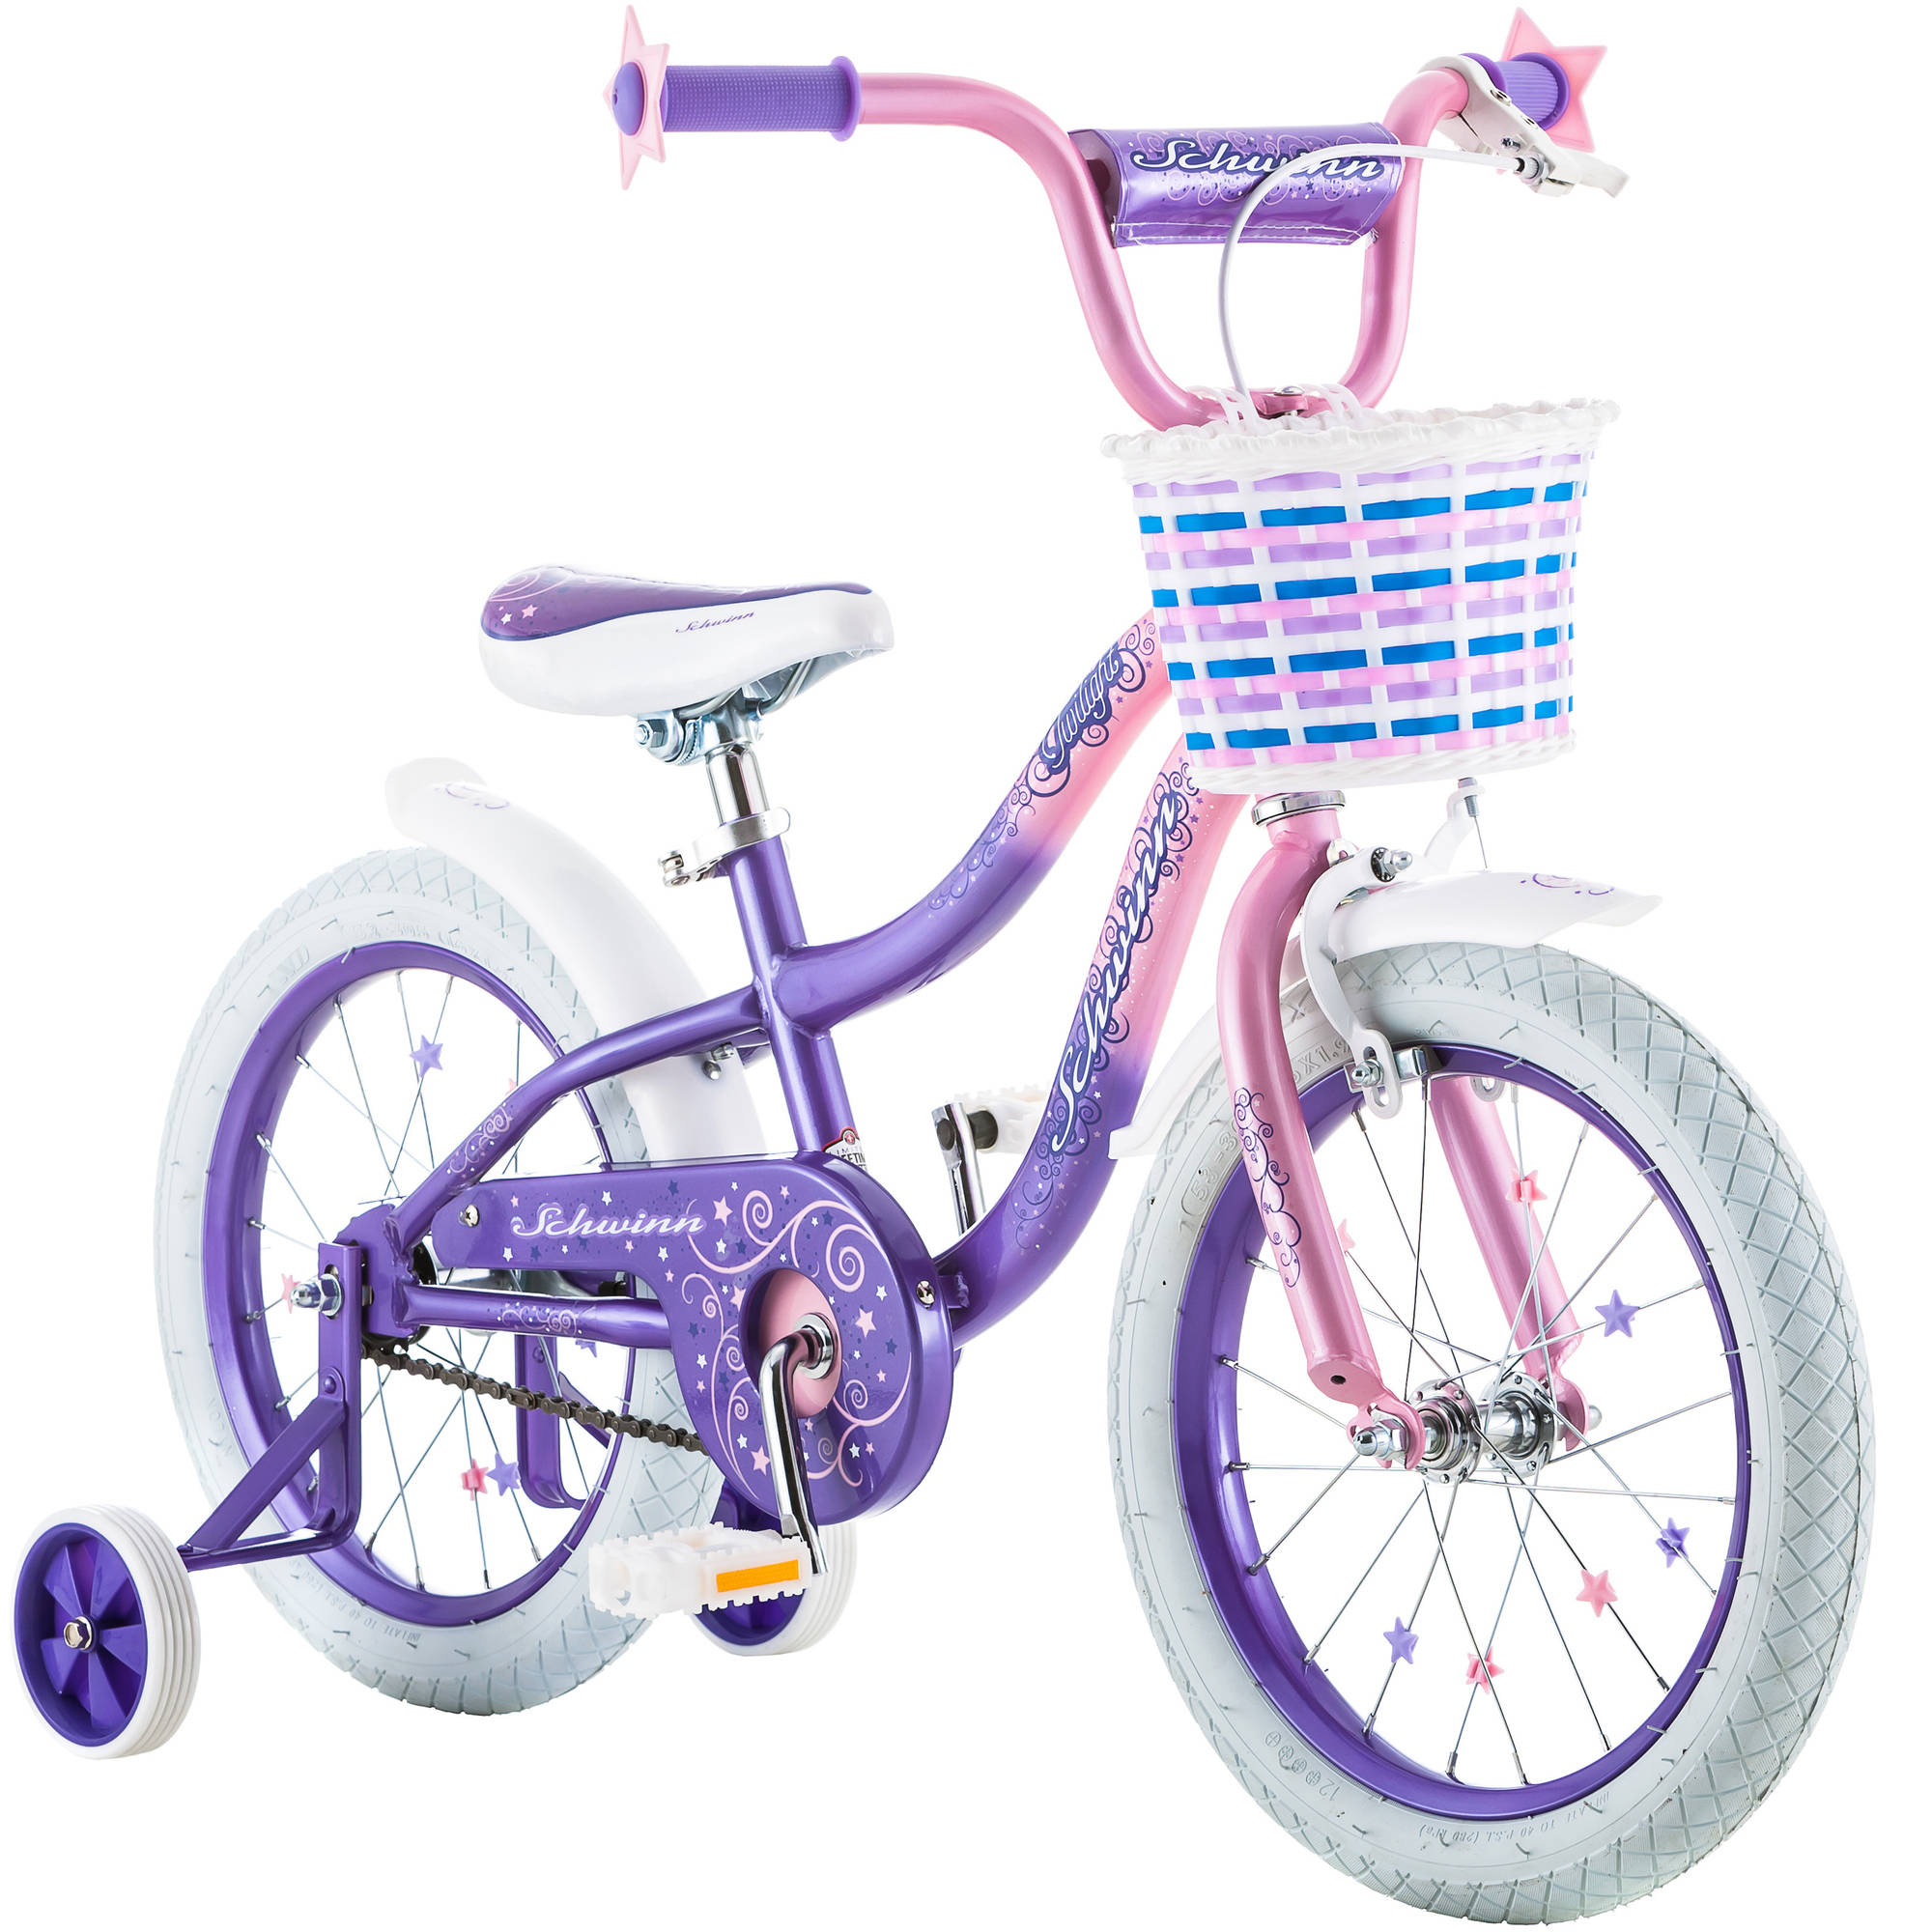 "16"" Schwinn Twilight Girls' Bike, Pink/Purple"